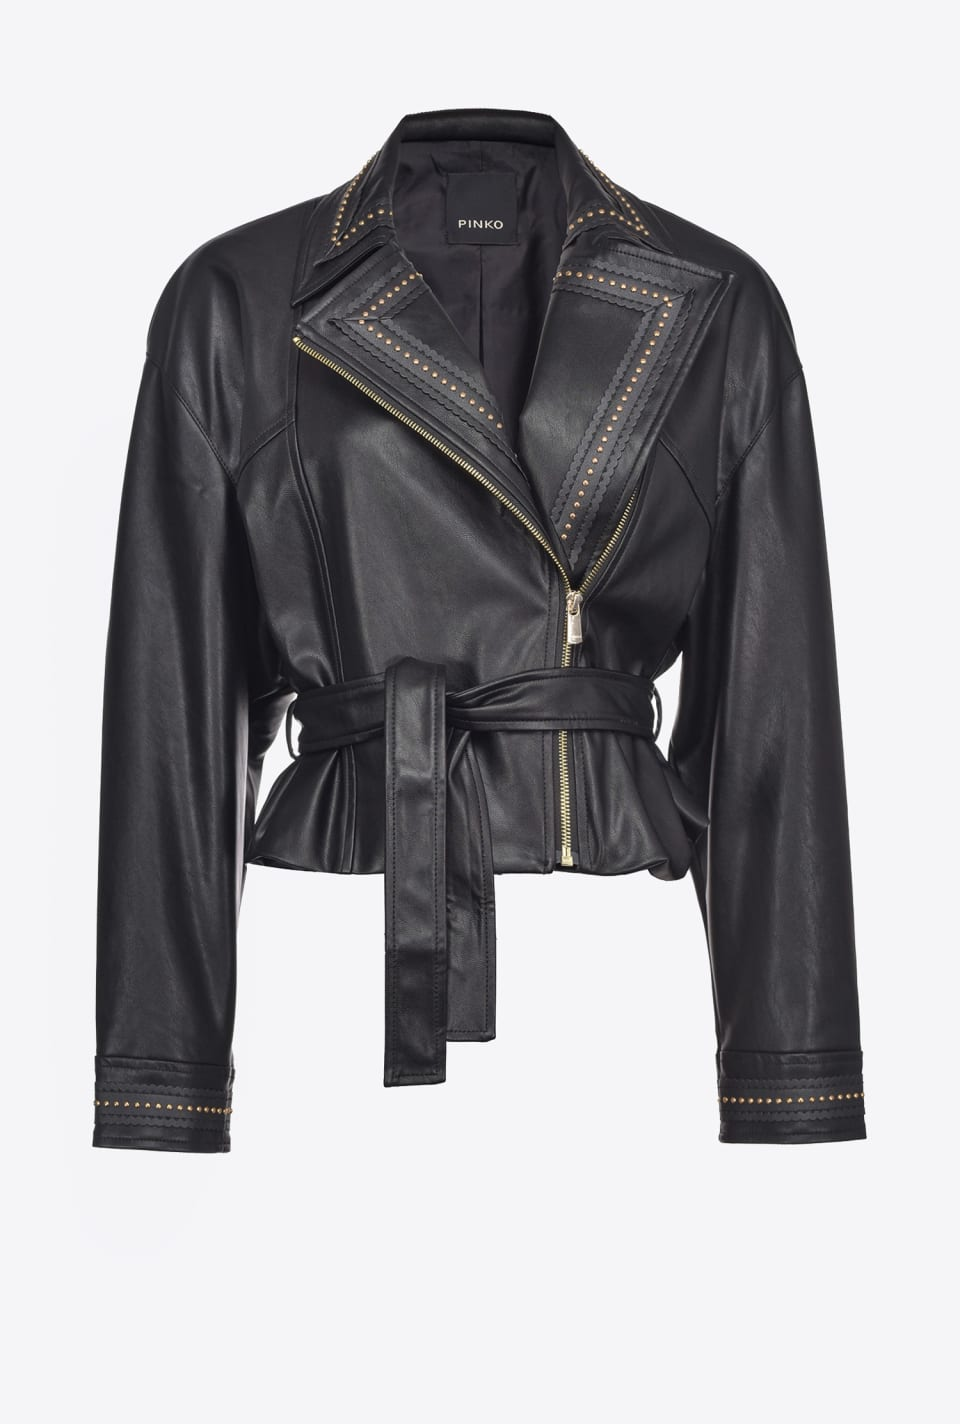 Leather-look biker jacket with studs - Pinko